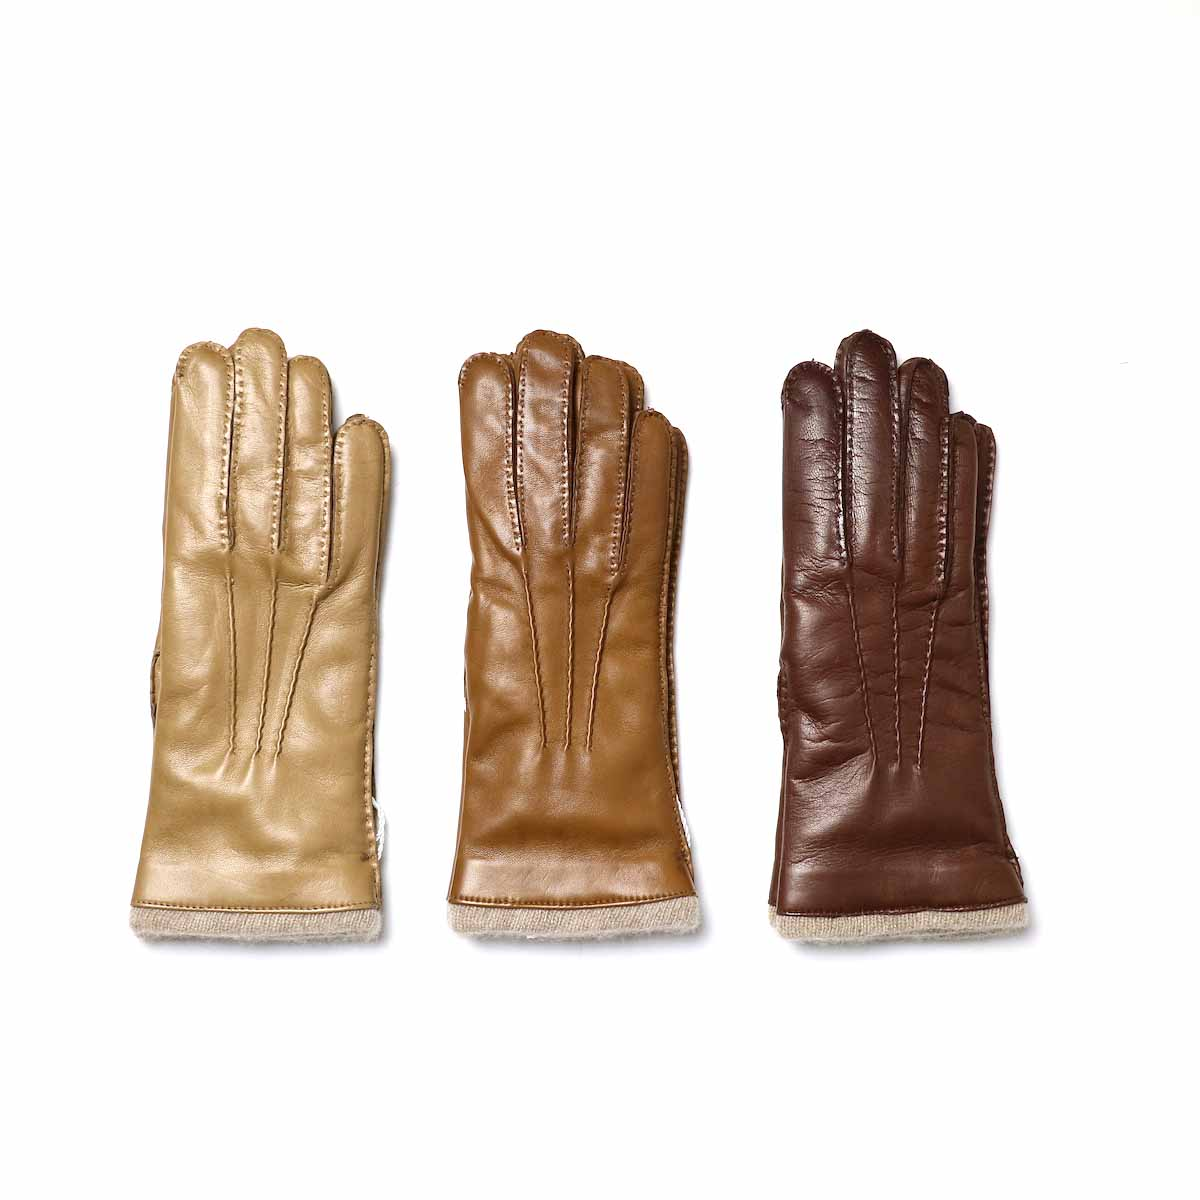 Italguanto / Leather Glove